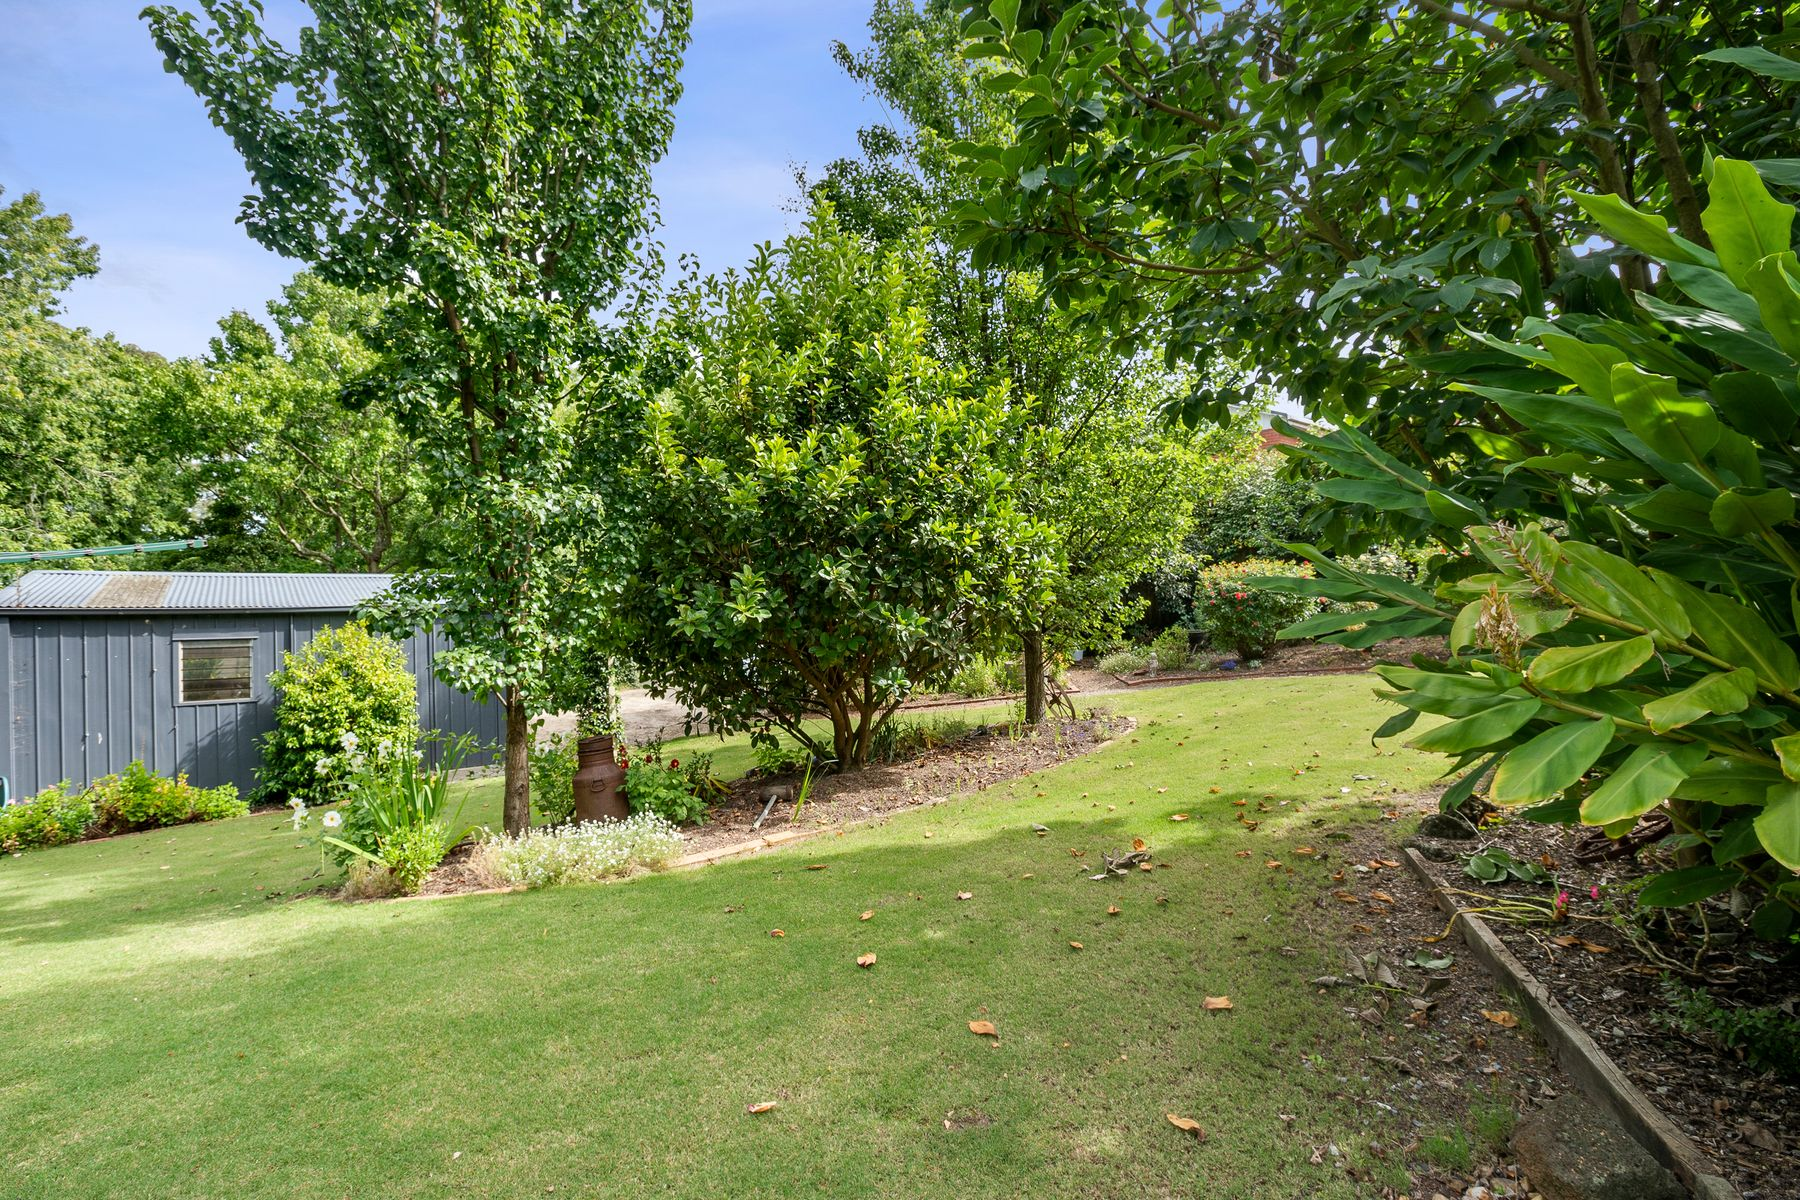 19. Bridge Street, Korumburra, VIC 3950